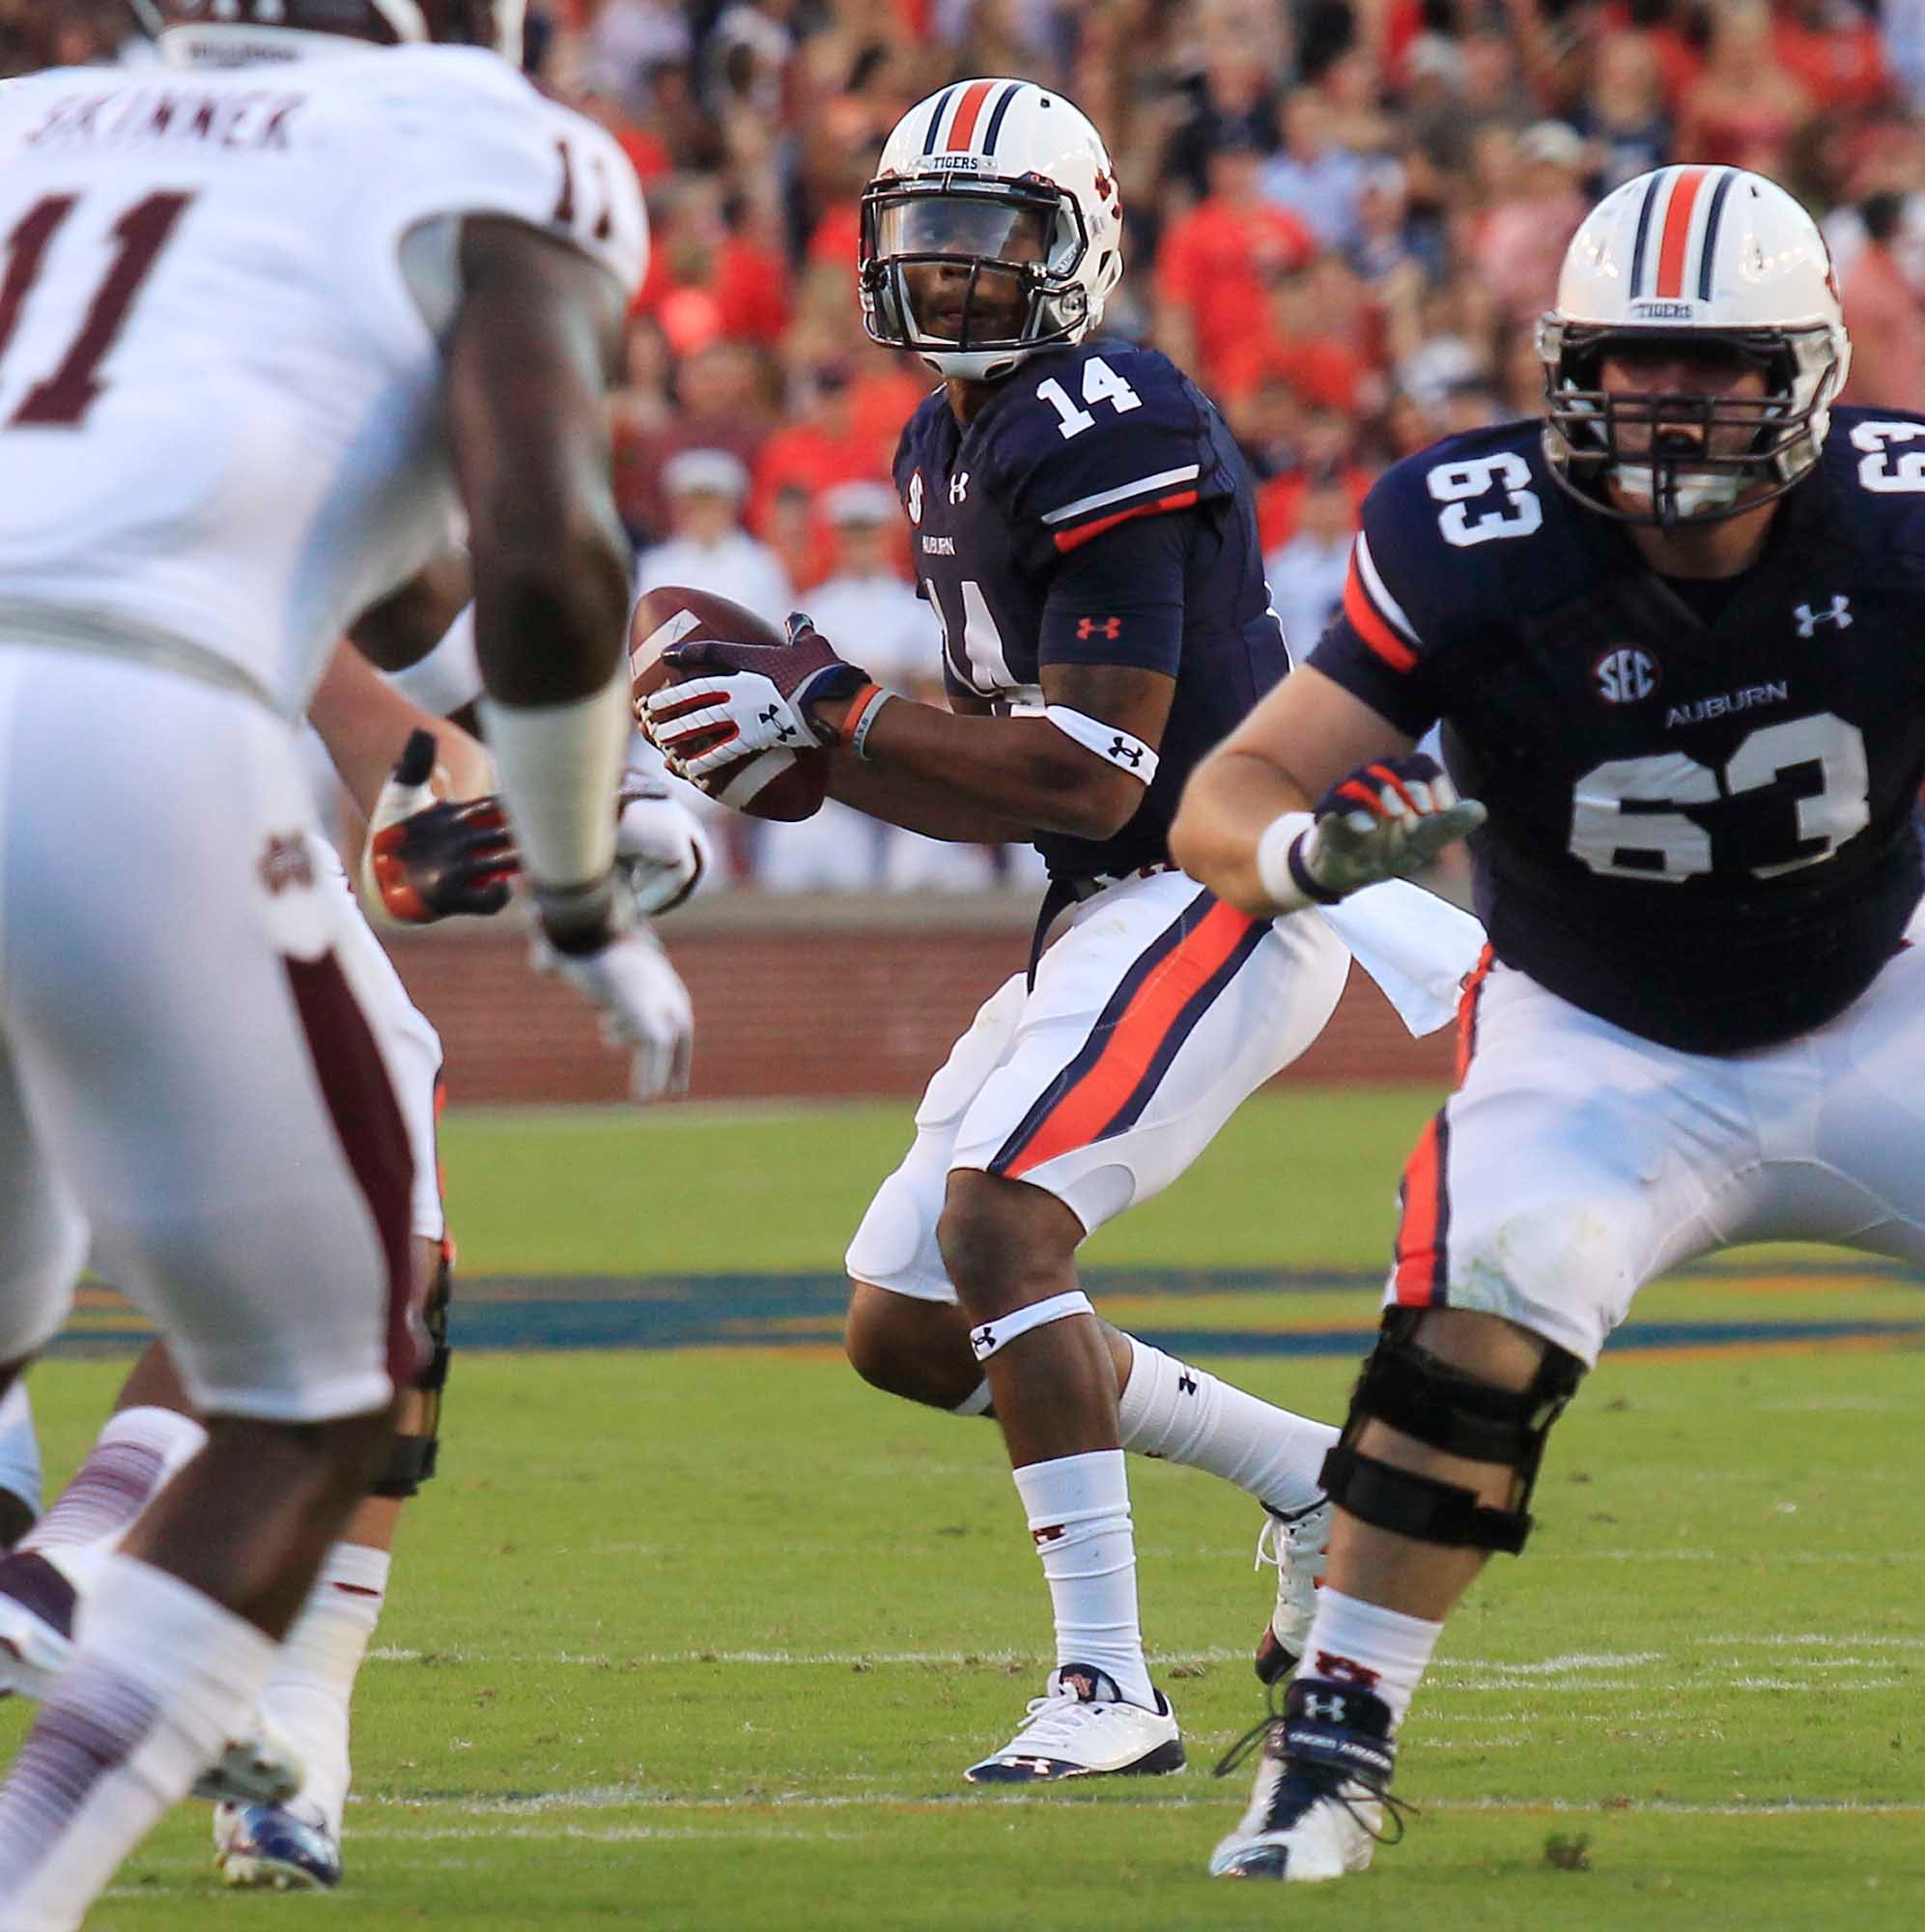 Auburn quarterback Nick Marshall drops back to pass. (Sour